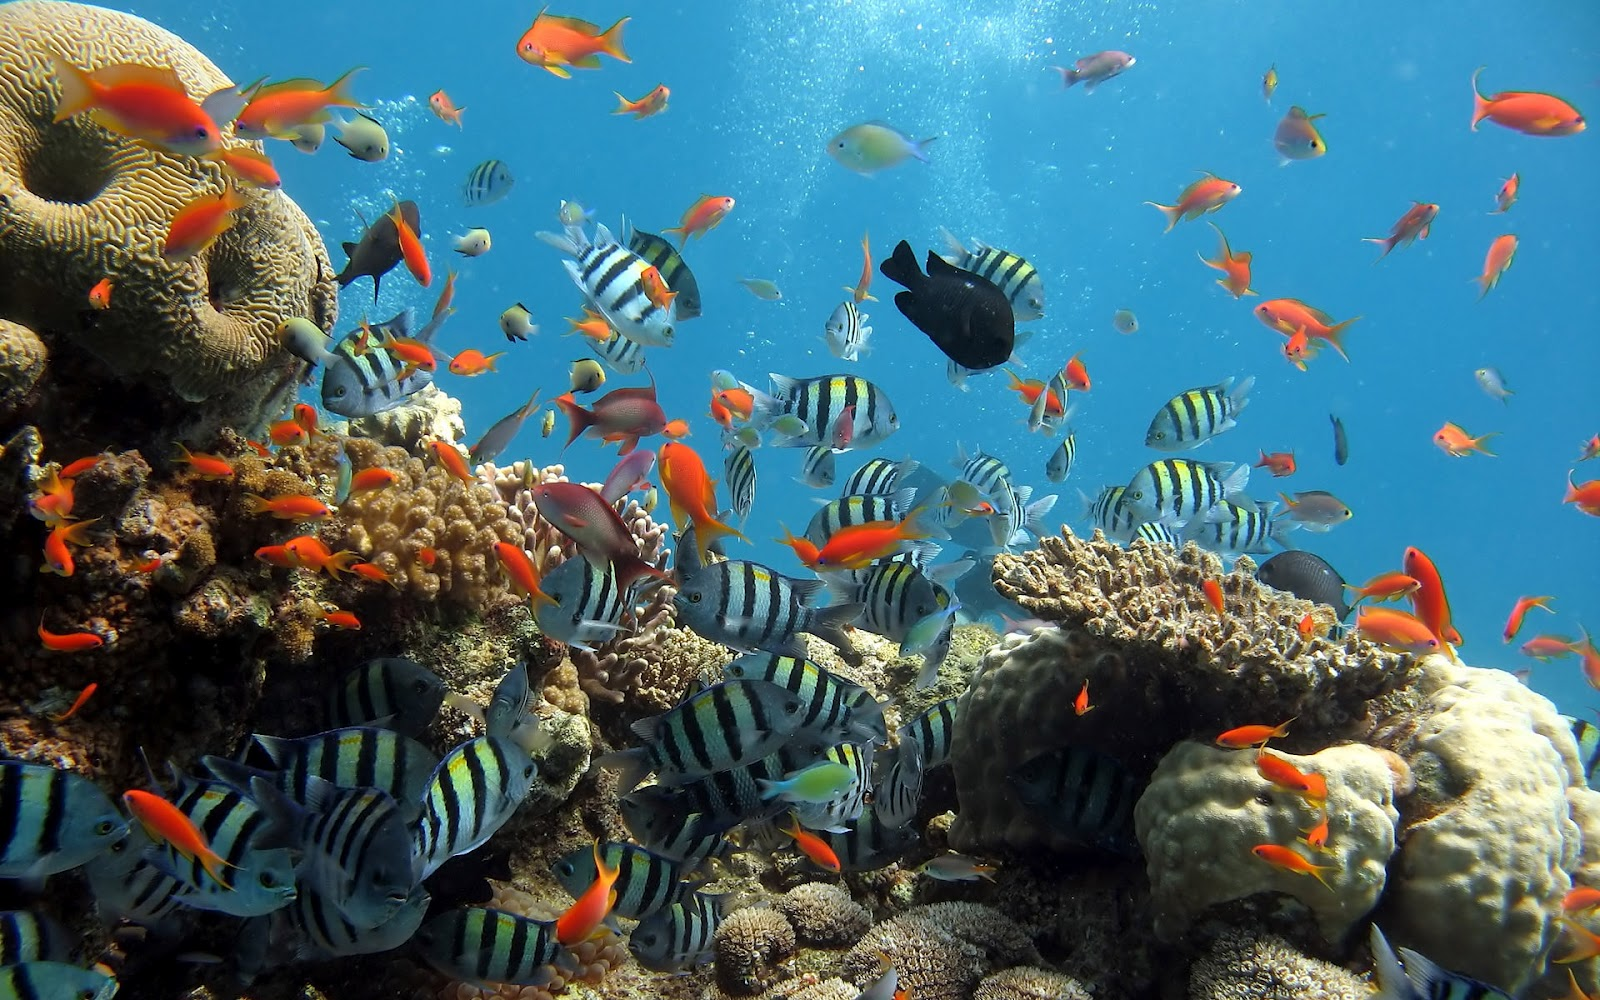 christianhdwallpaper: Coral Reef wallpapers